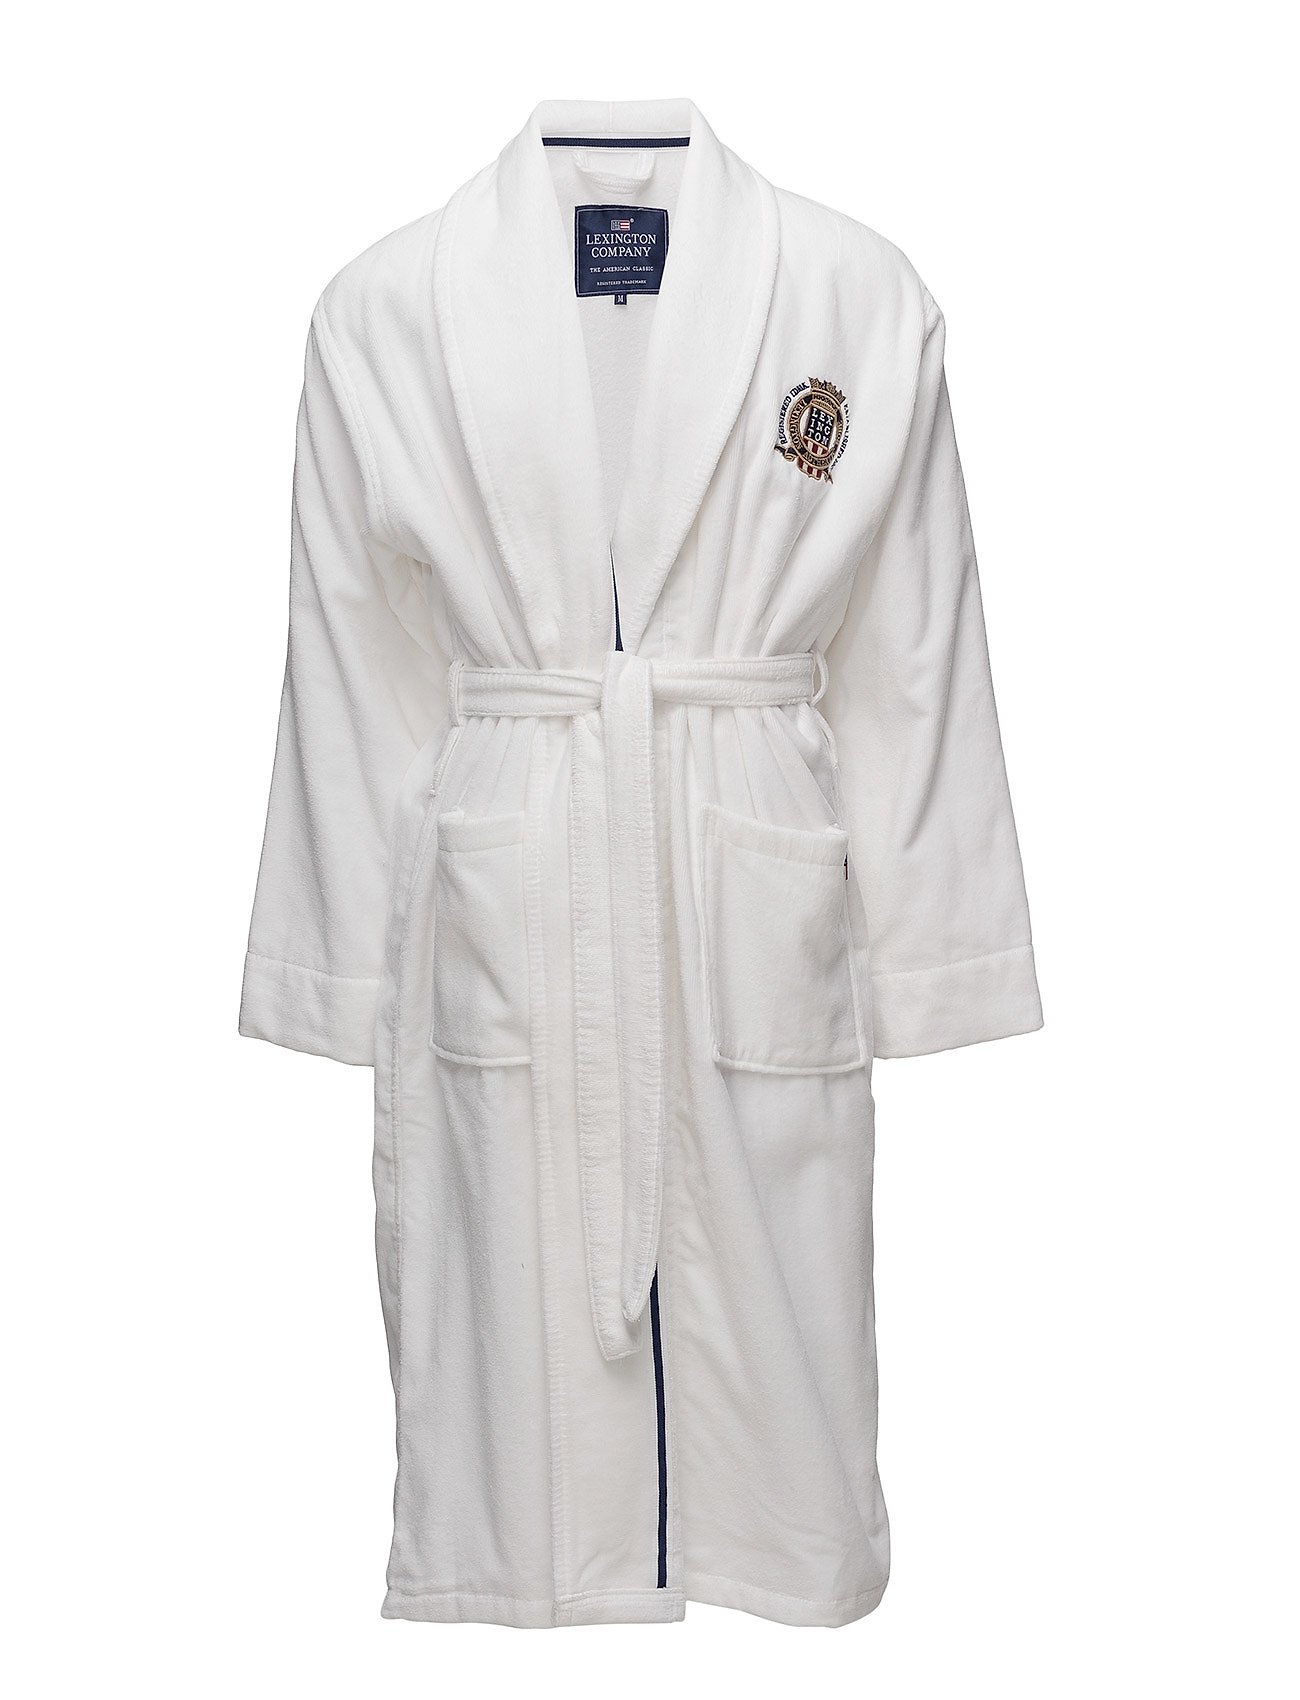 Lexington Home Lexington Velour Robe - WHITE